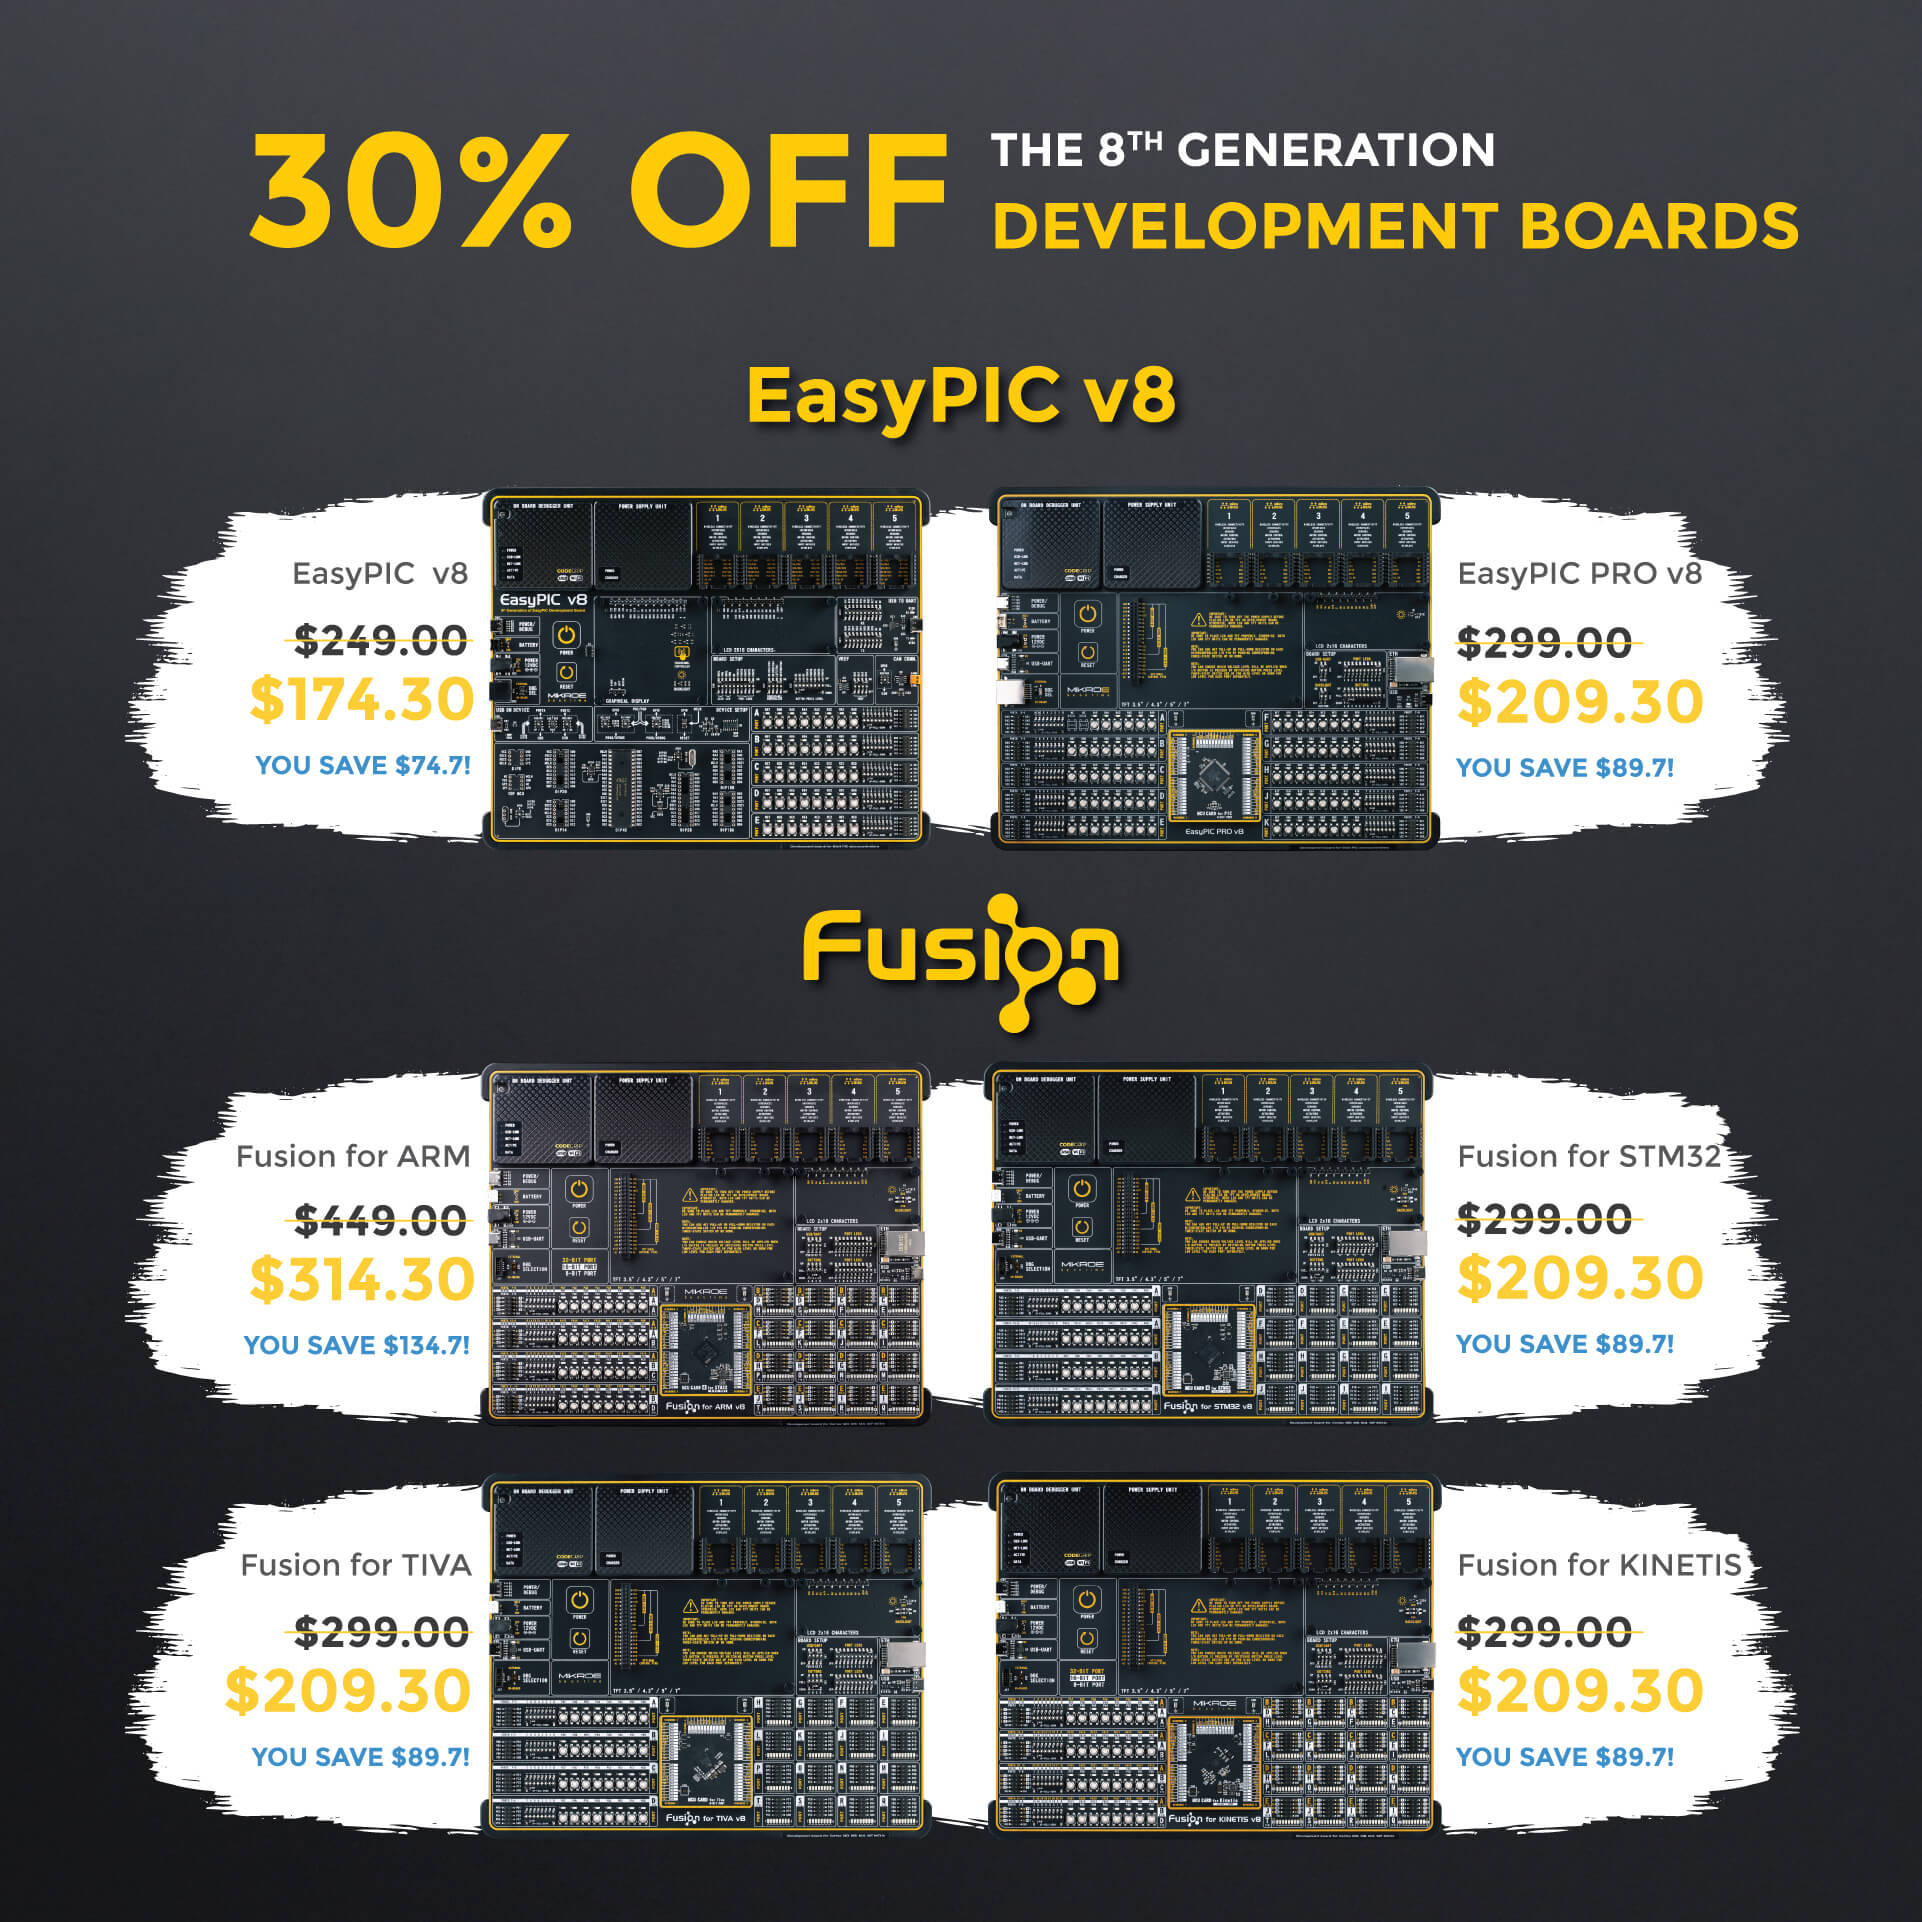 30% OFF DEVELOPMENT BOARDS